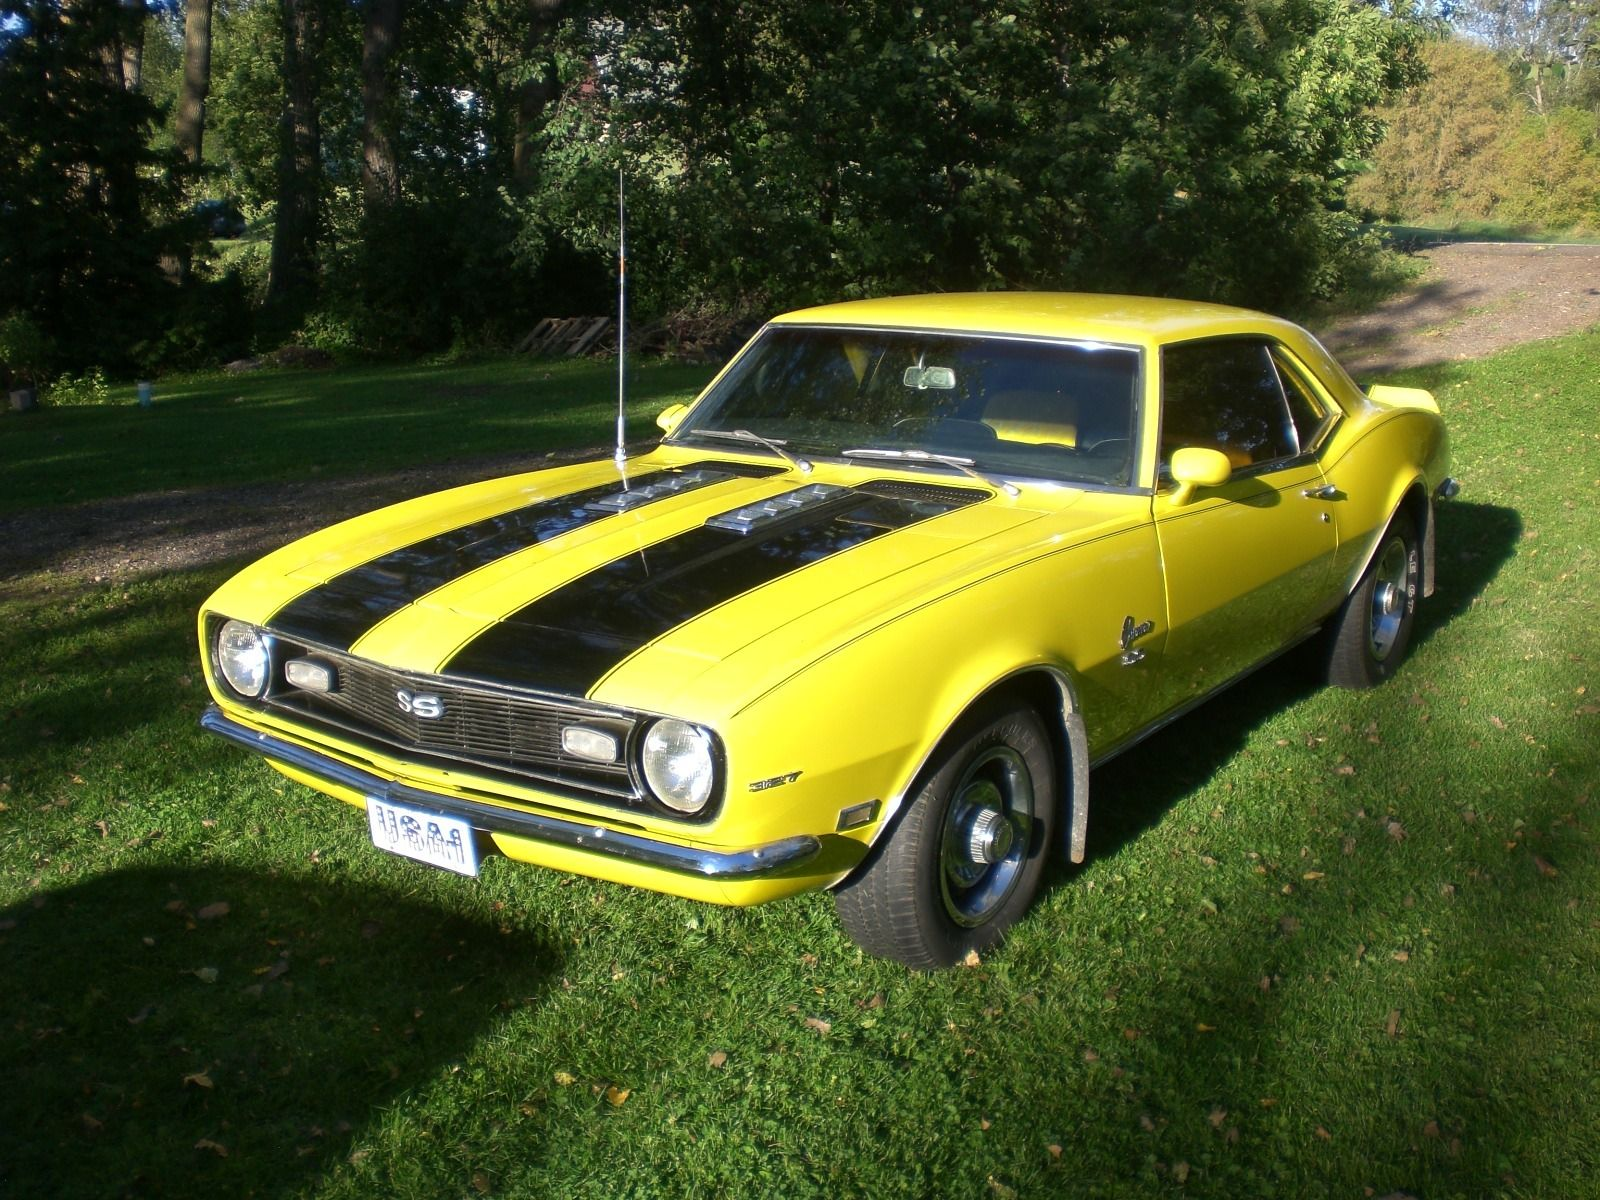 1968 Chevy Camaro Ss Restored In 1980 With Gm Panels Not Chinese 1976 Yellow Chevrolet 350